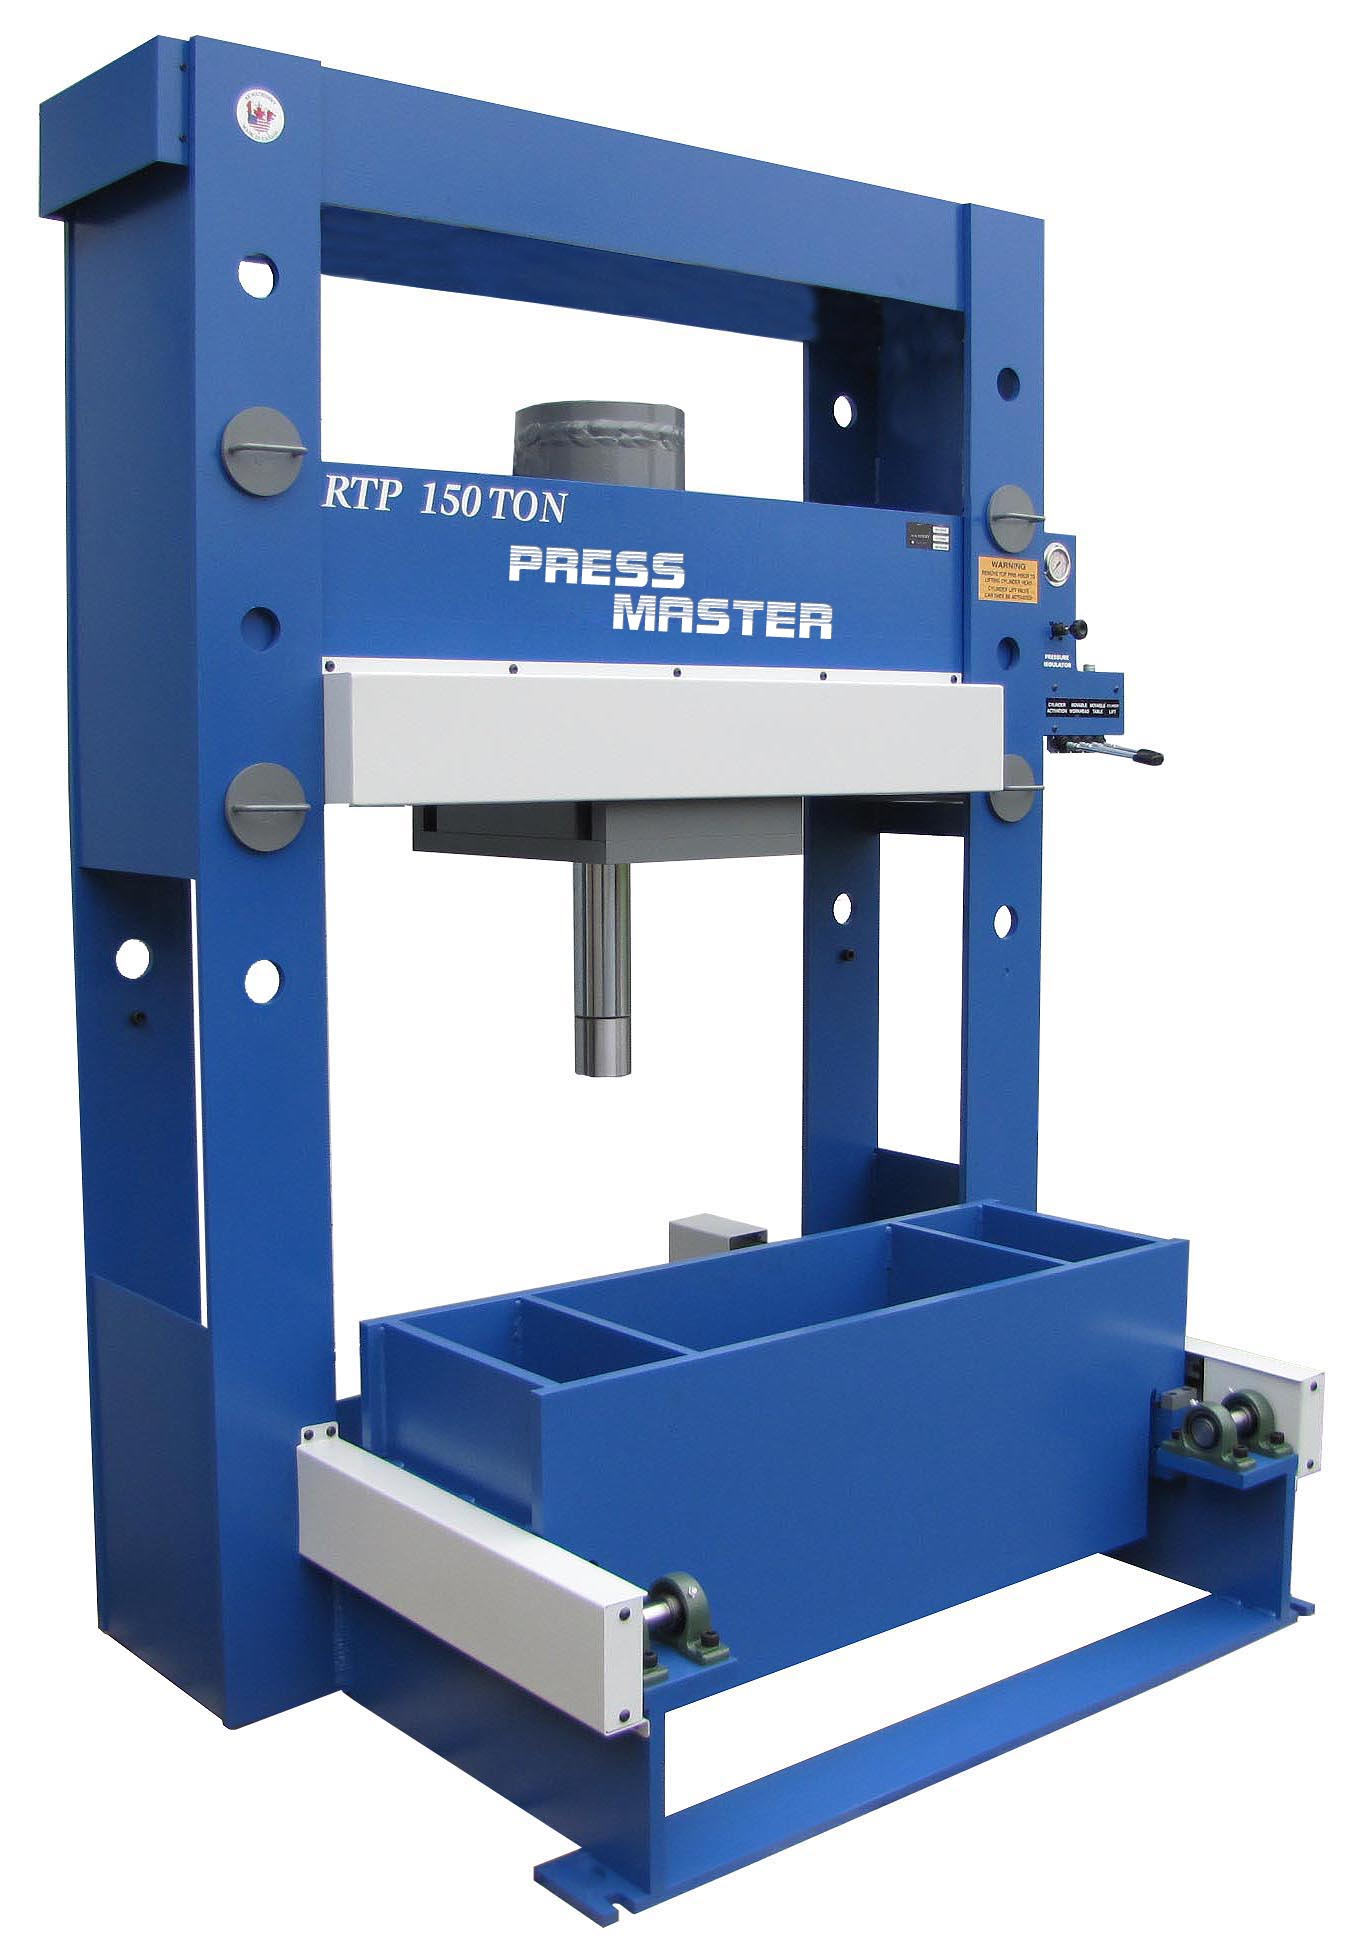 Press Master Roll-In table Hydraulic Press 150 ton